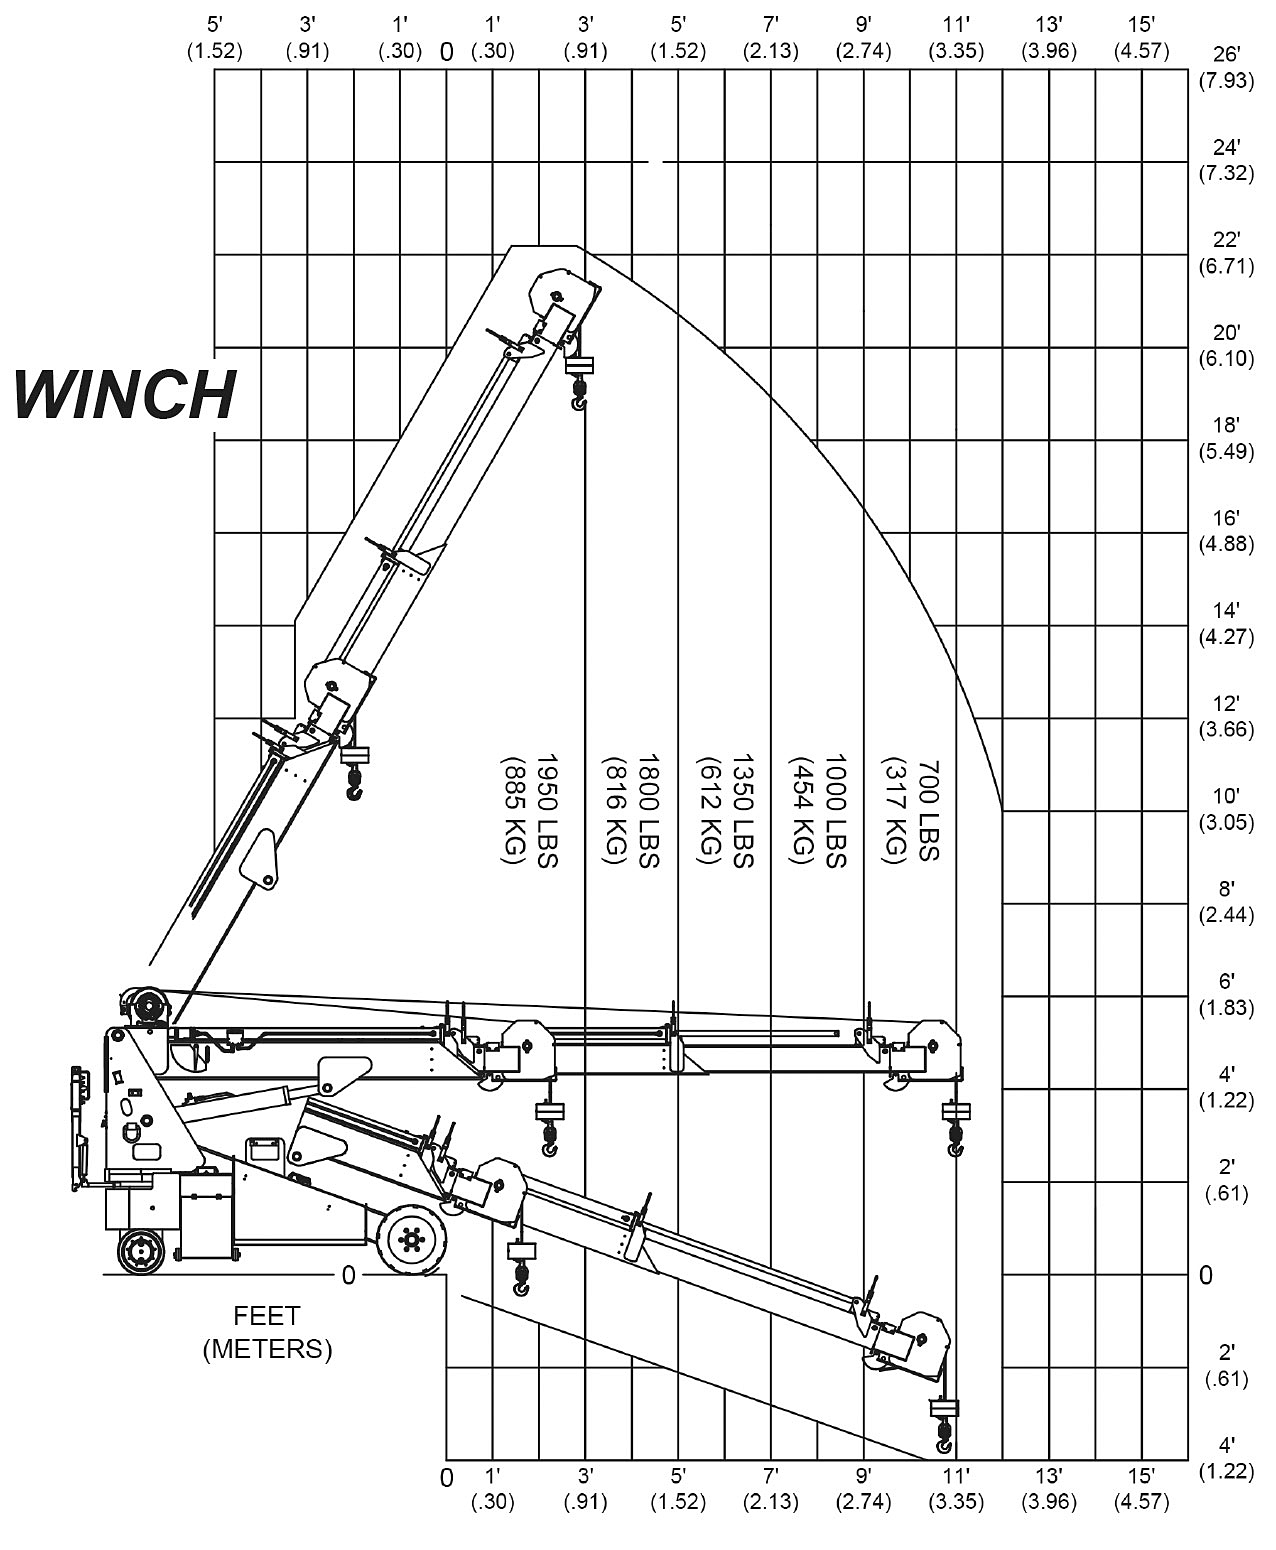 The Junior Winch Load Capacity